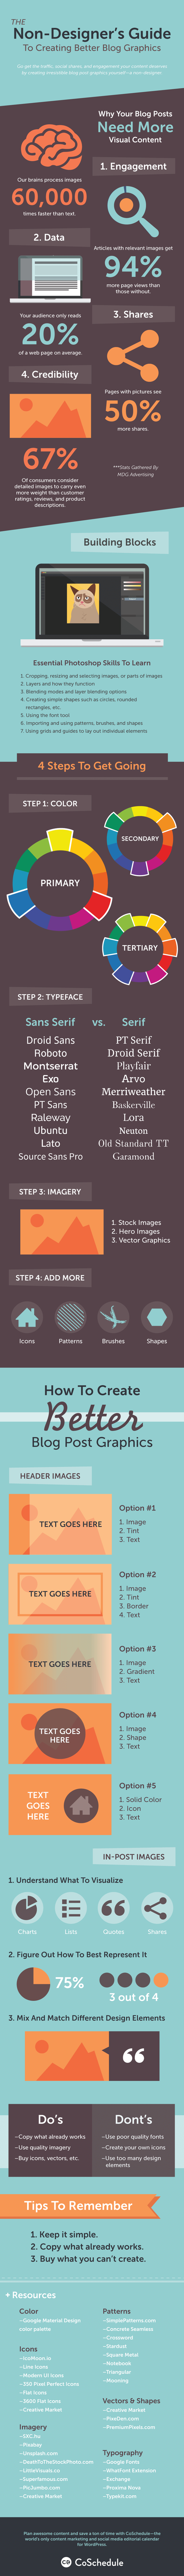 Infographic: The non-designer's guide to creating better blog graphics